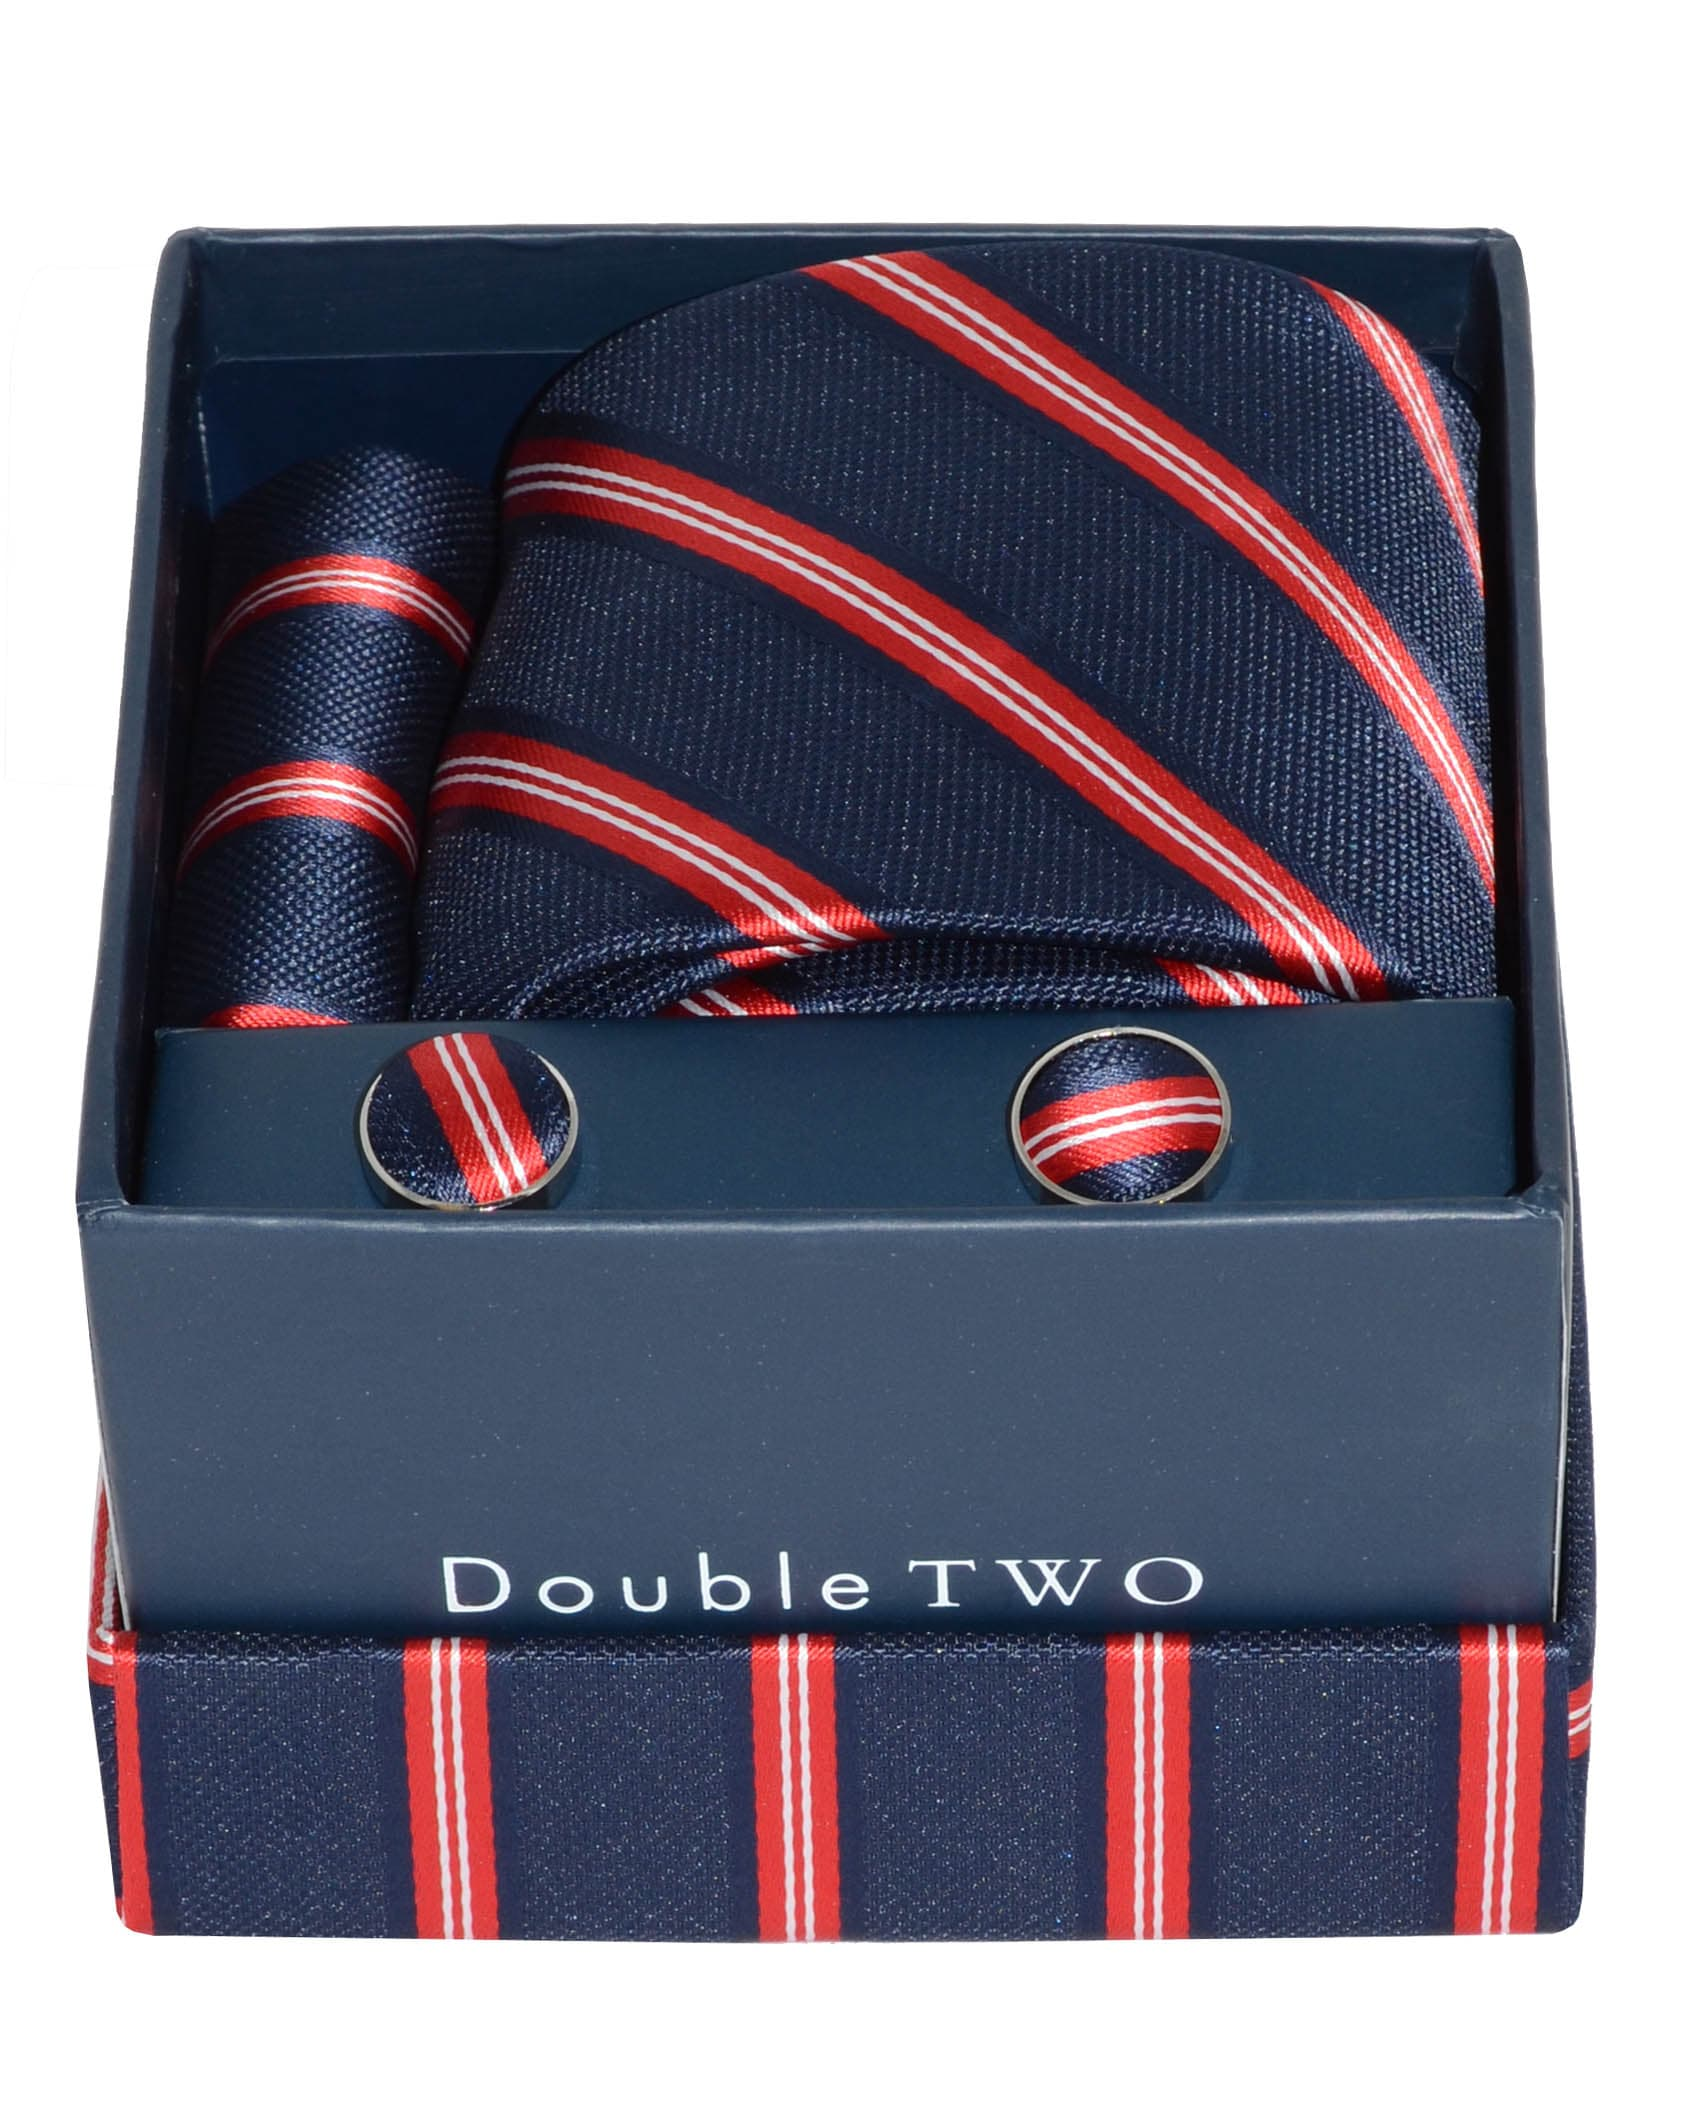 Shop our best selling tie, cufflinks and handkerchief set